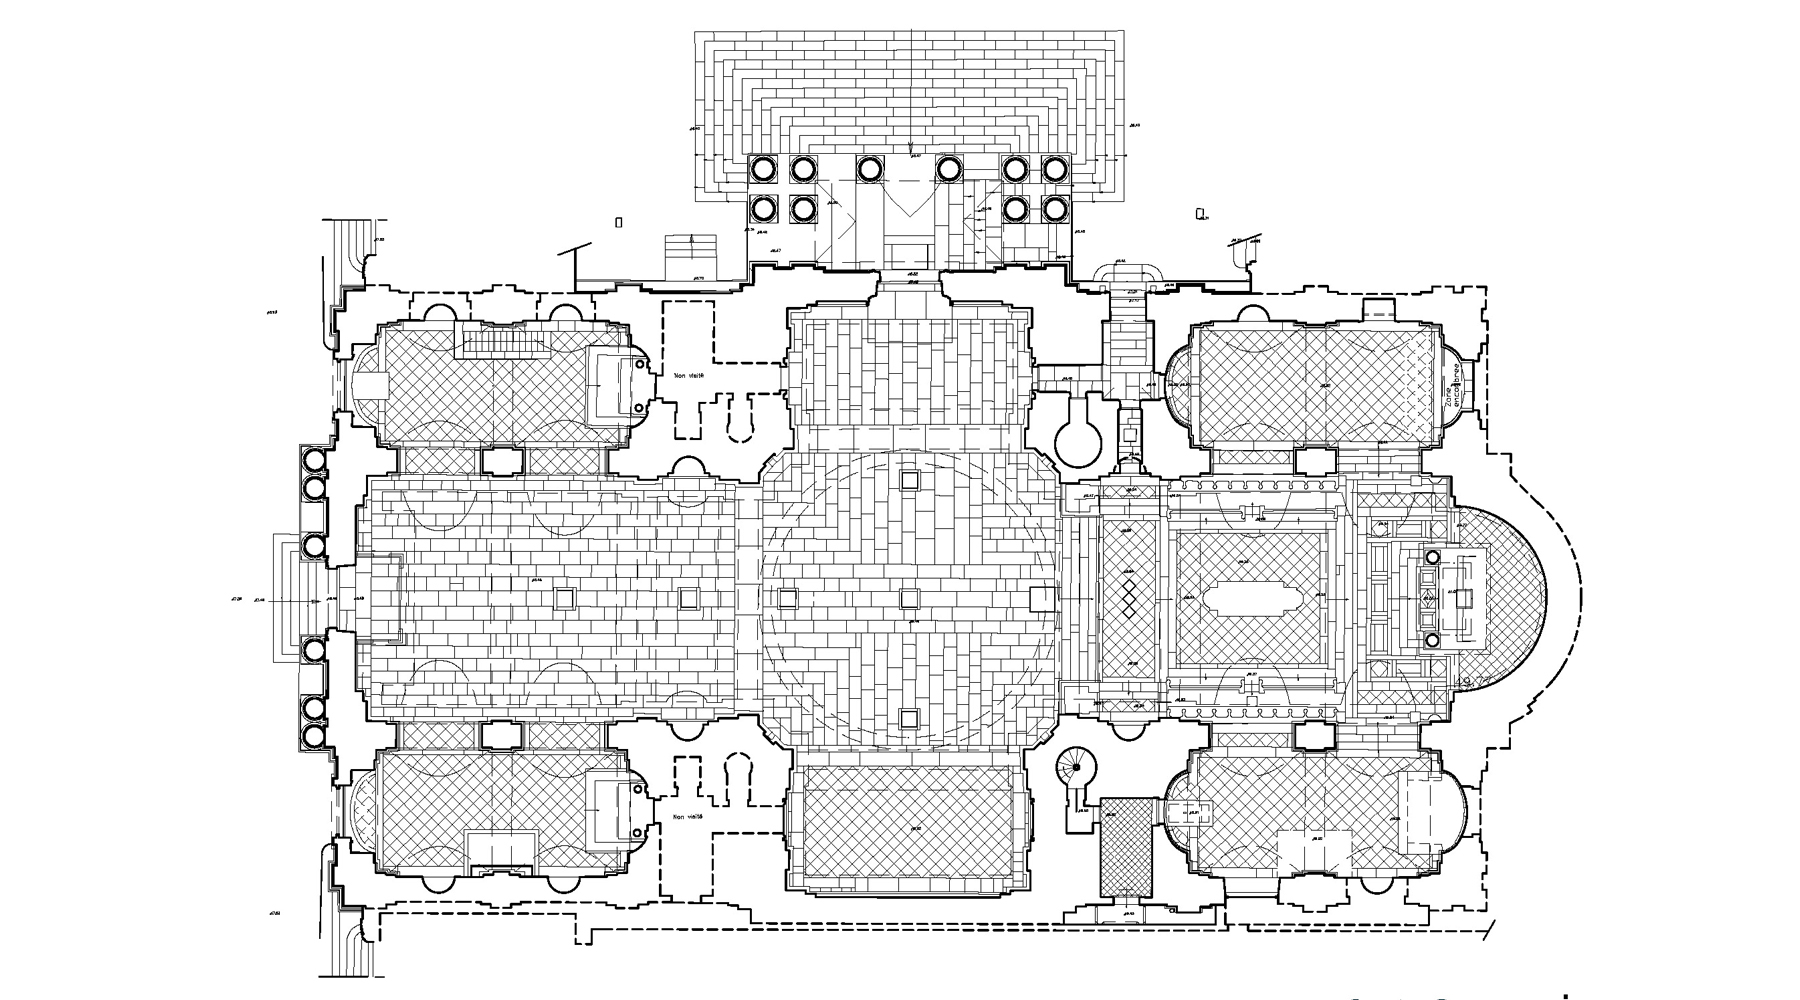 Chapelle de la Sorbonne, Paris - Plan